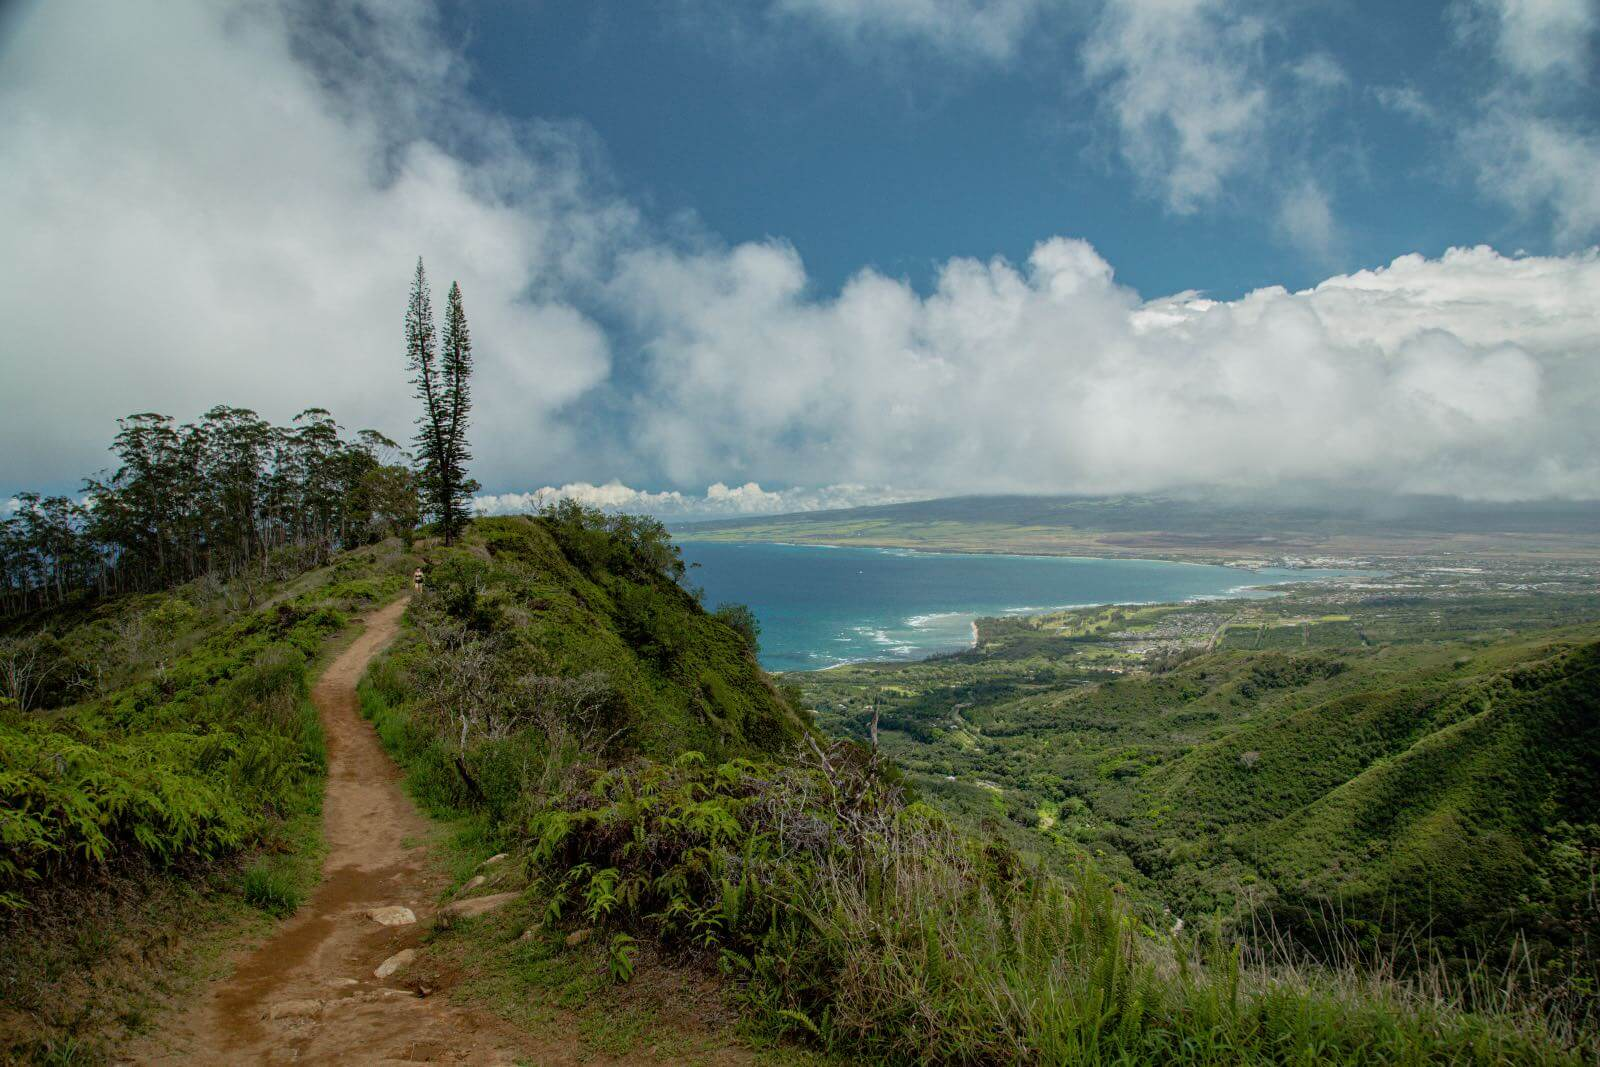 The Ridge Trail with ocean Views